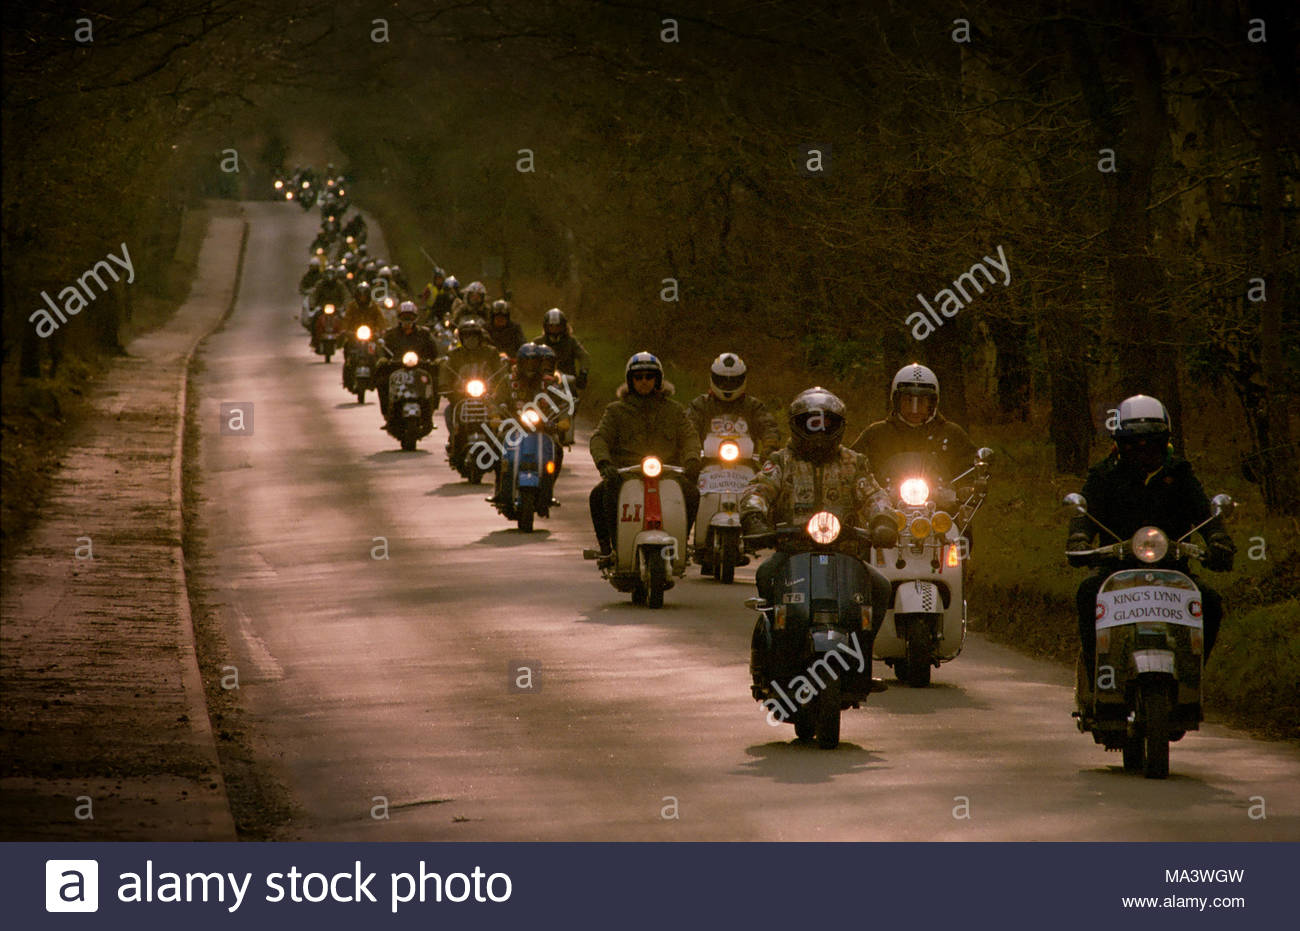 King's Lynn, Norfolk, 30th March 2018.  enthusiasts from KIng's Lynn Gladiators Scooter Club riding out in the sunshine through the back roads of Norfolk. Credit: 67photo/Alamy - Stock Image